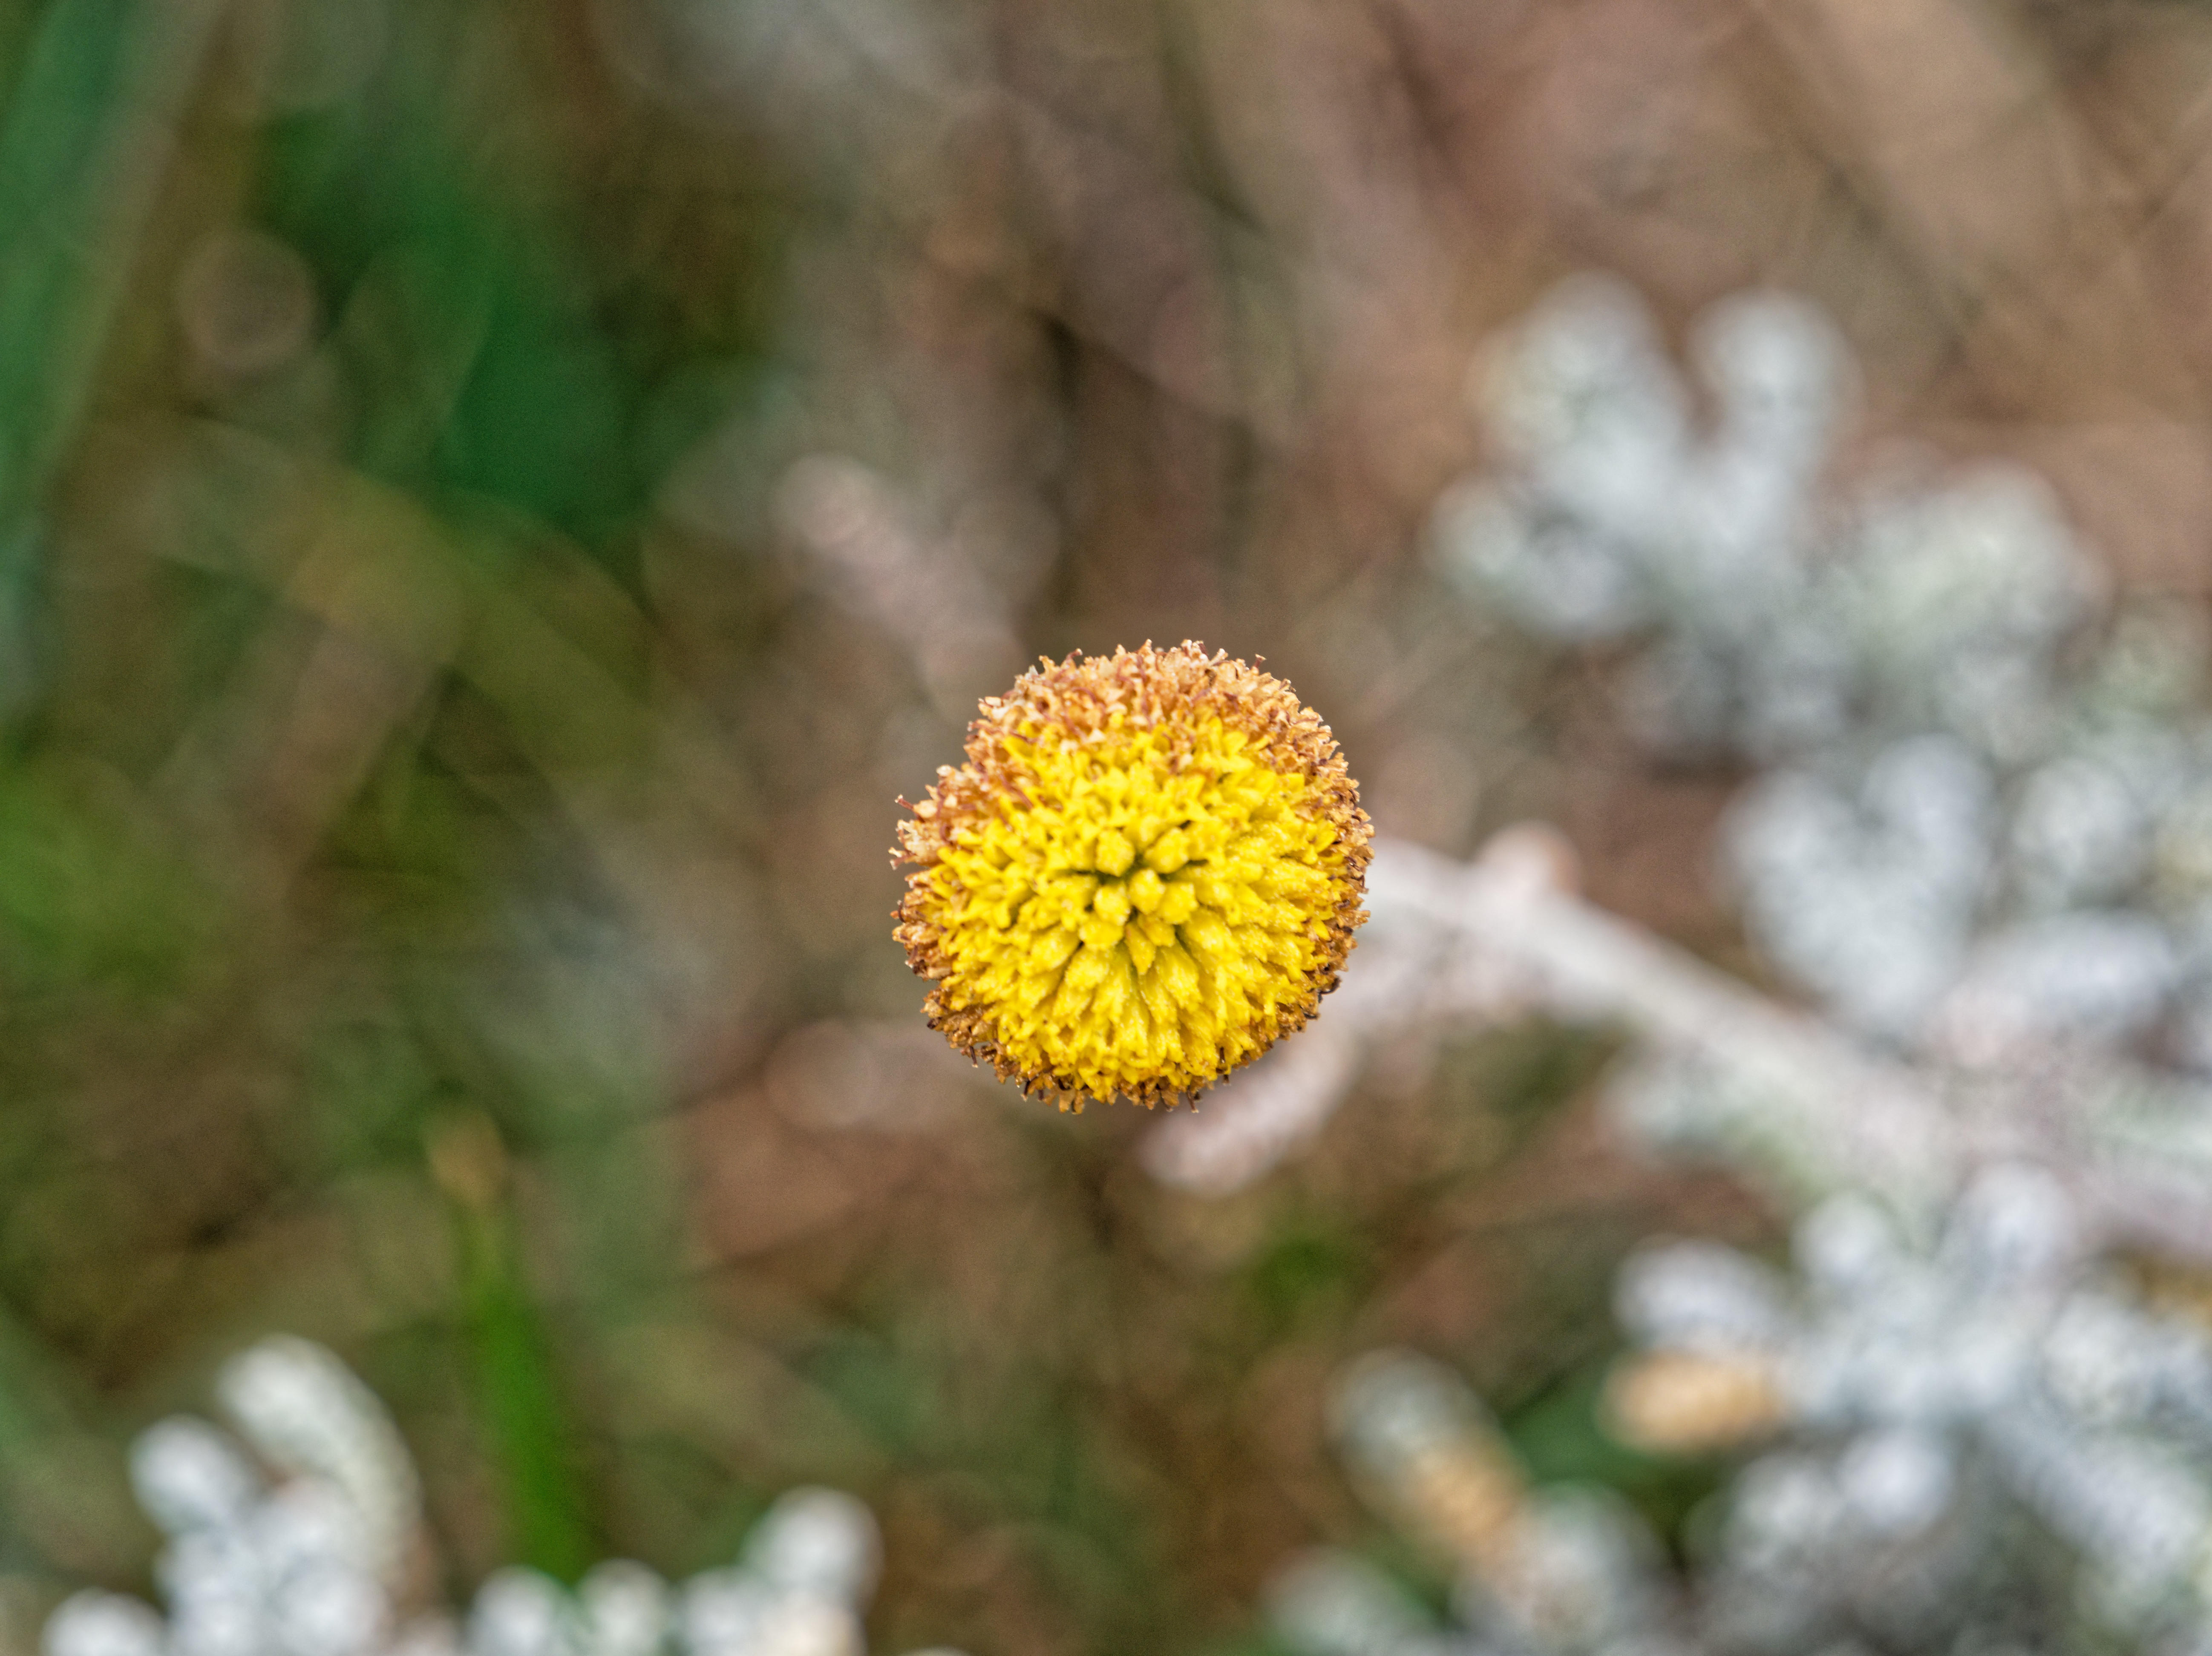 This should be Helichrysum-3.jpeg.  Is it missing?